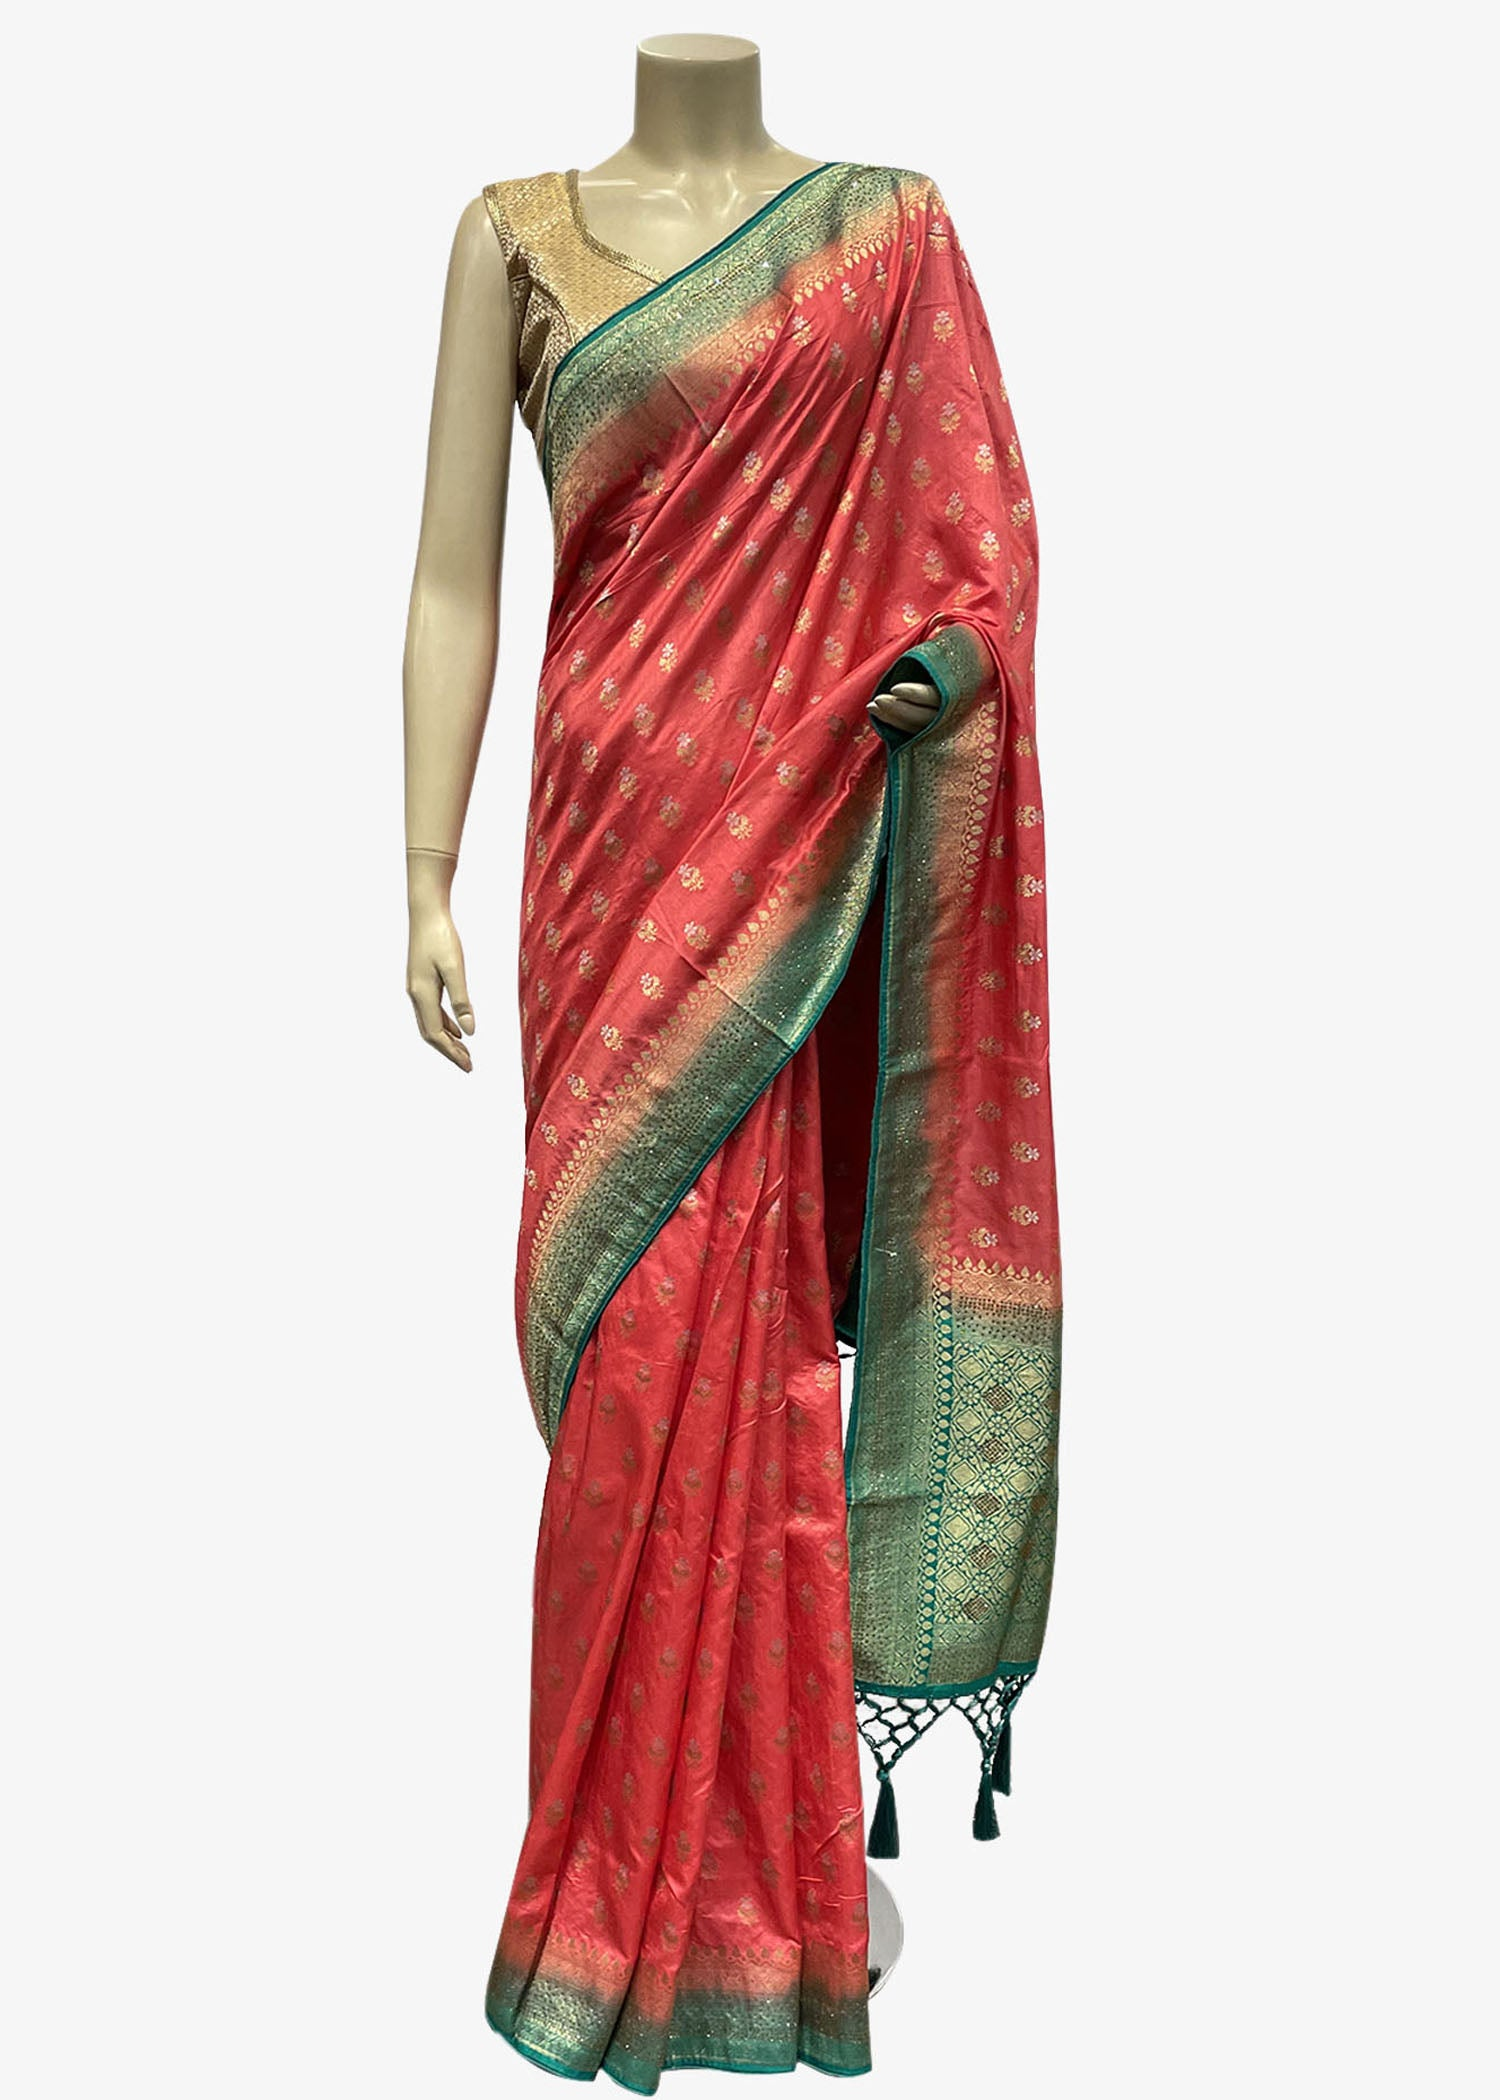 Peach Banarasi Silk Saree With Gold Zari Weaved Buttis With Teal Shaded Pallu And Border